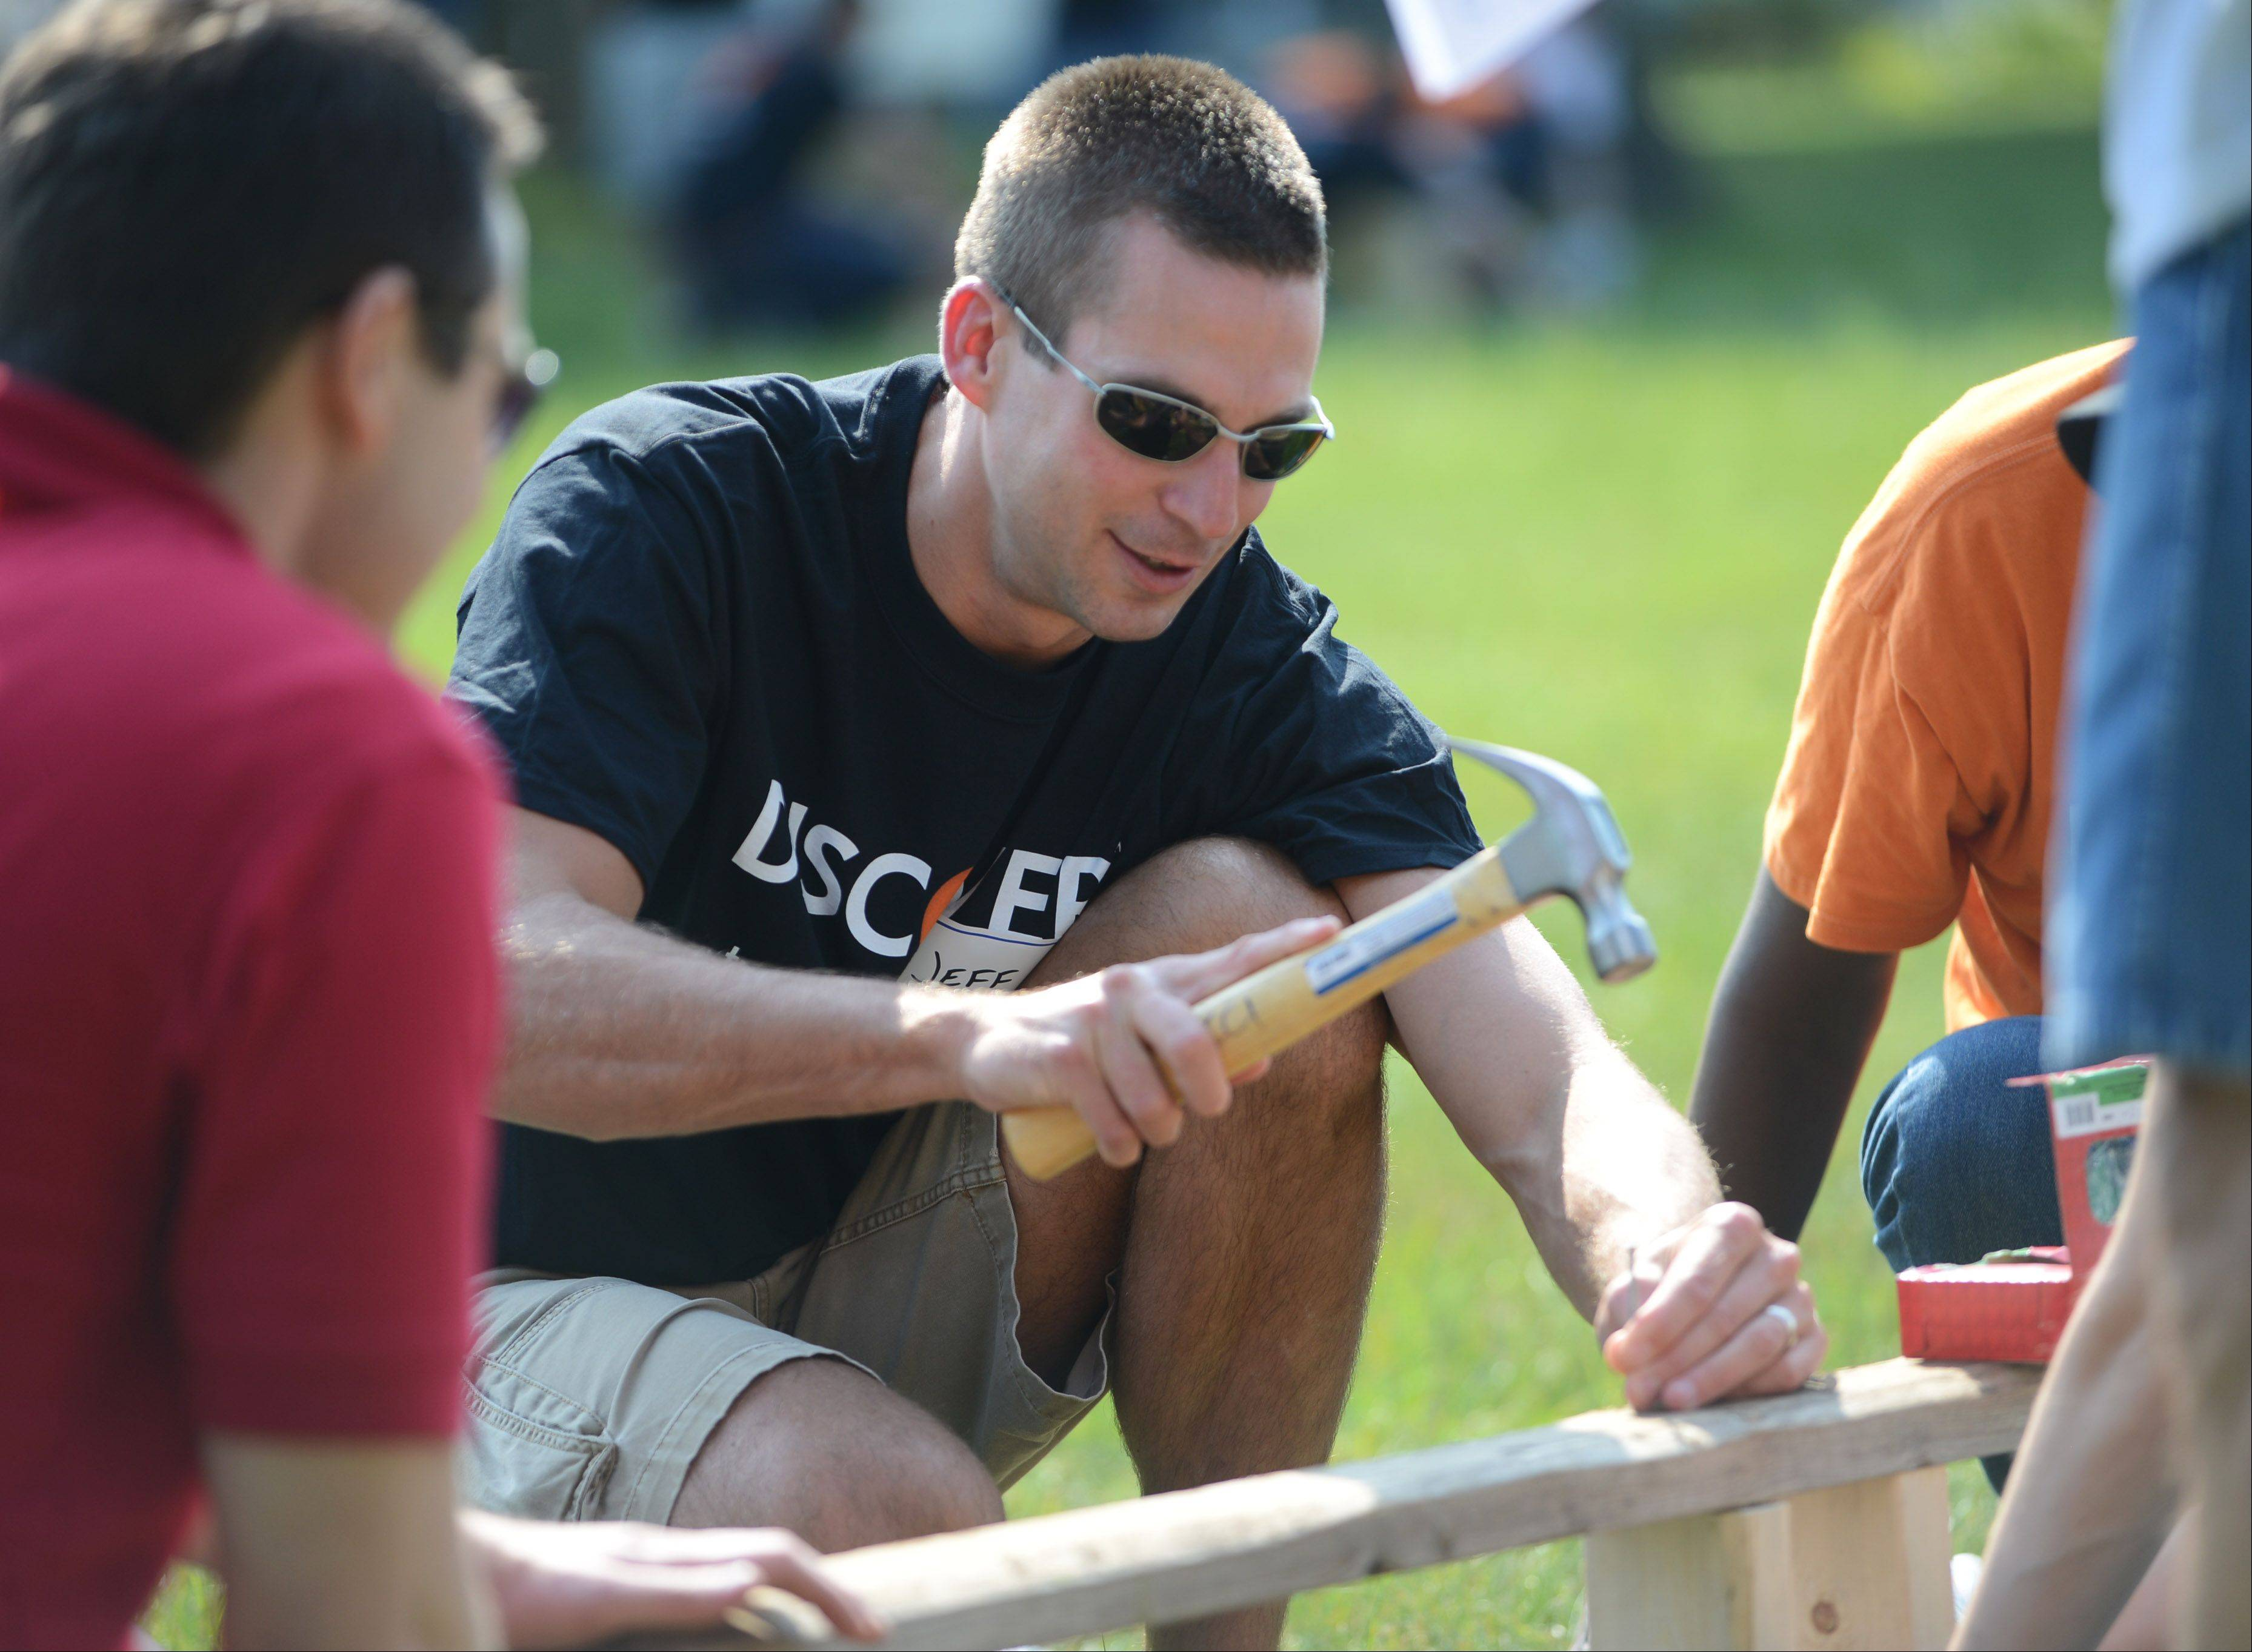 Jeff Krueger, of Northbrook, works on installing benches near the playing fields.